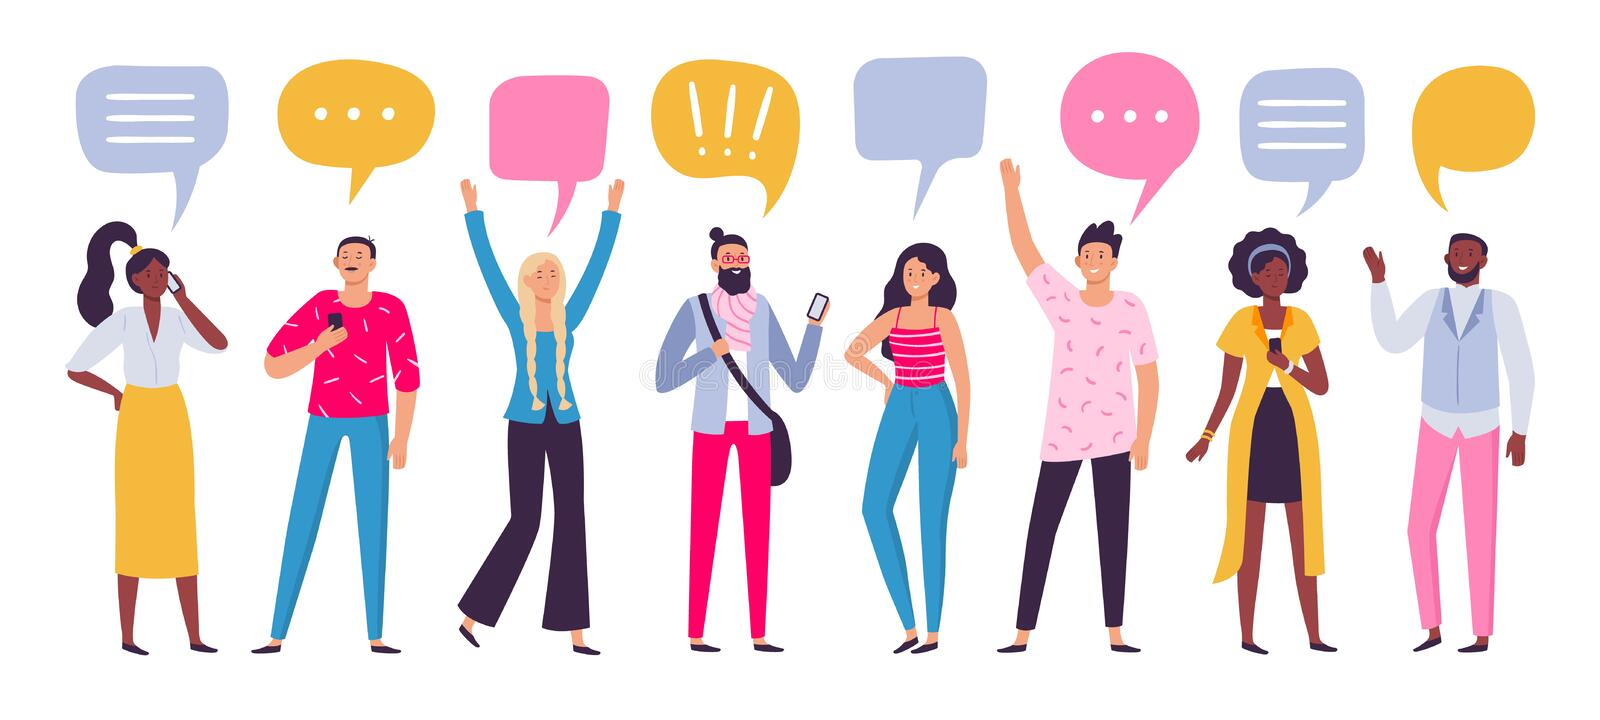 Communicating people. Chat dialog communication, smartphone call talking or speaking people group vector illustration stock illustration